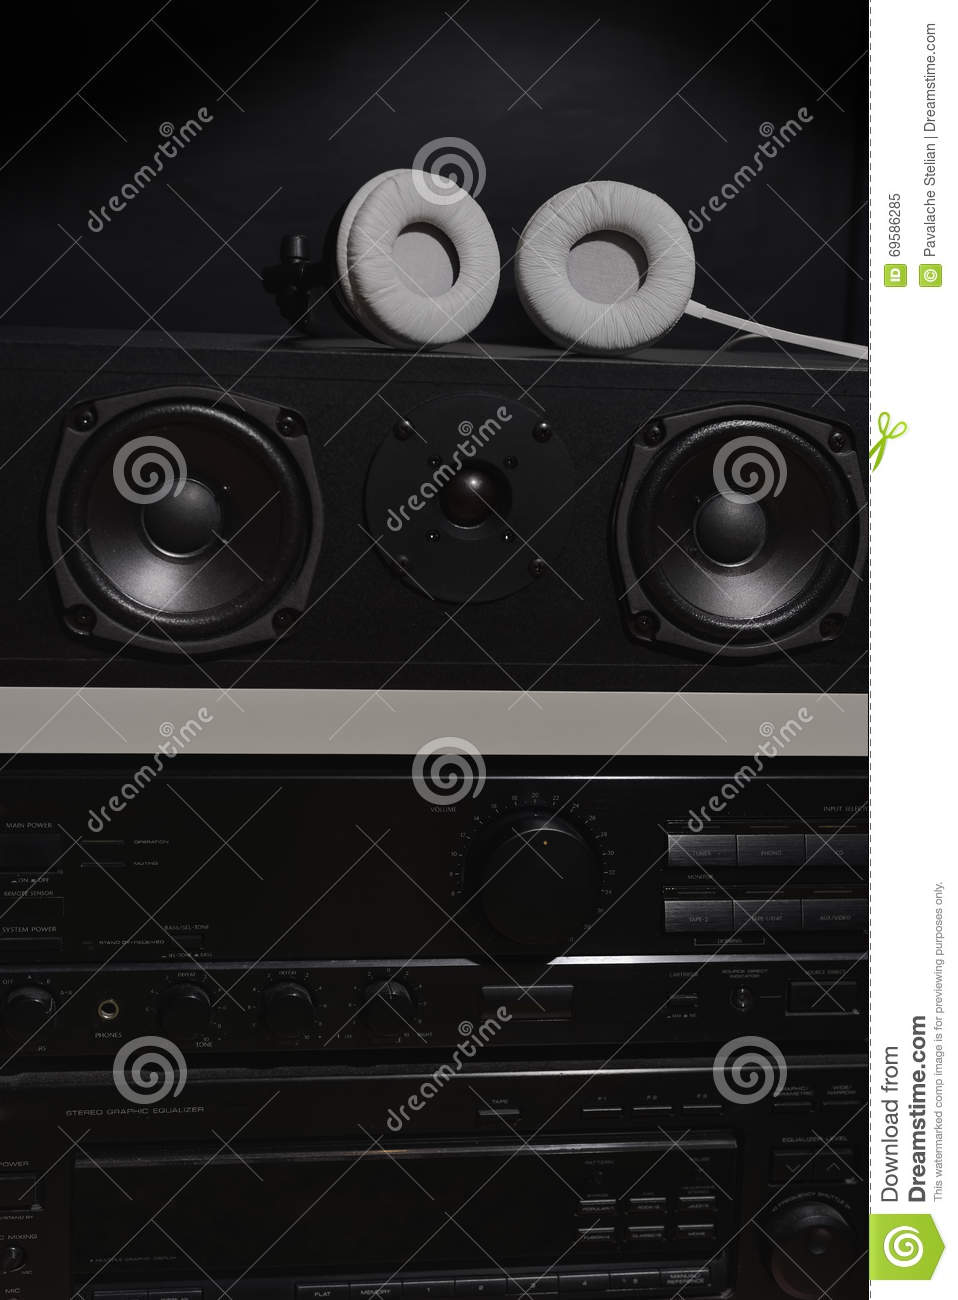 Central Speakers And Stereo Amplifier With Digital Equalizer